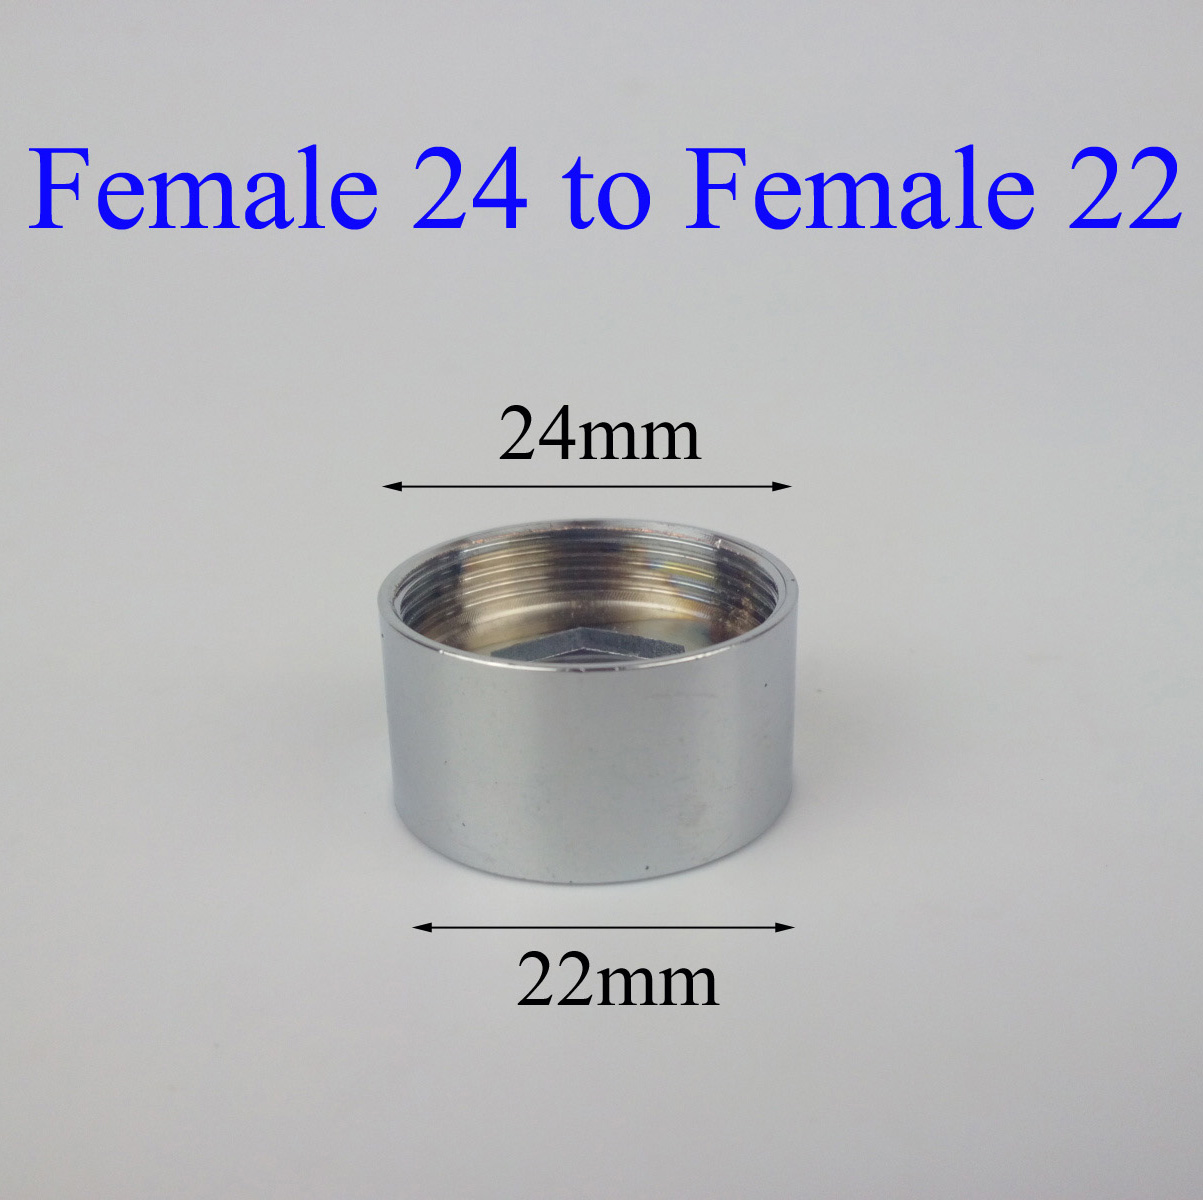 Female 24 to Female 22 chromed brass faucet adapter-in Kitchen ...